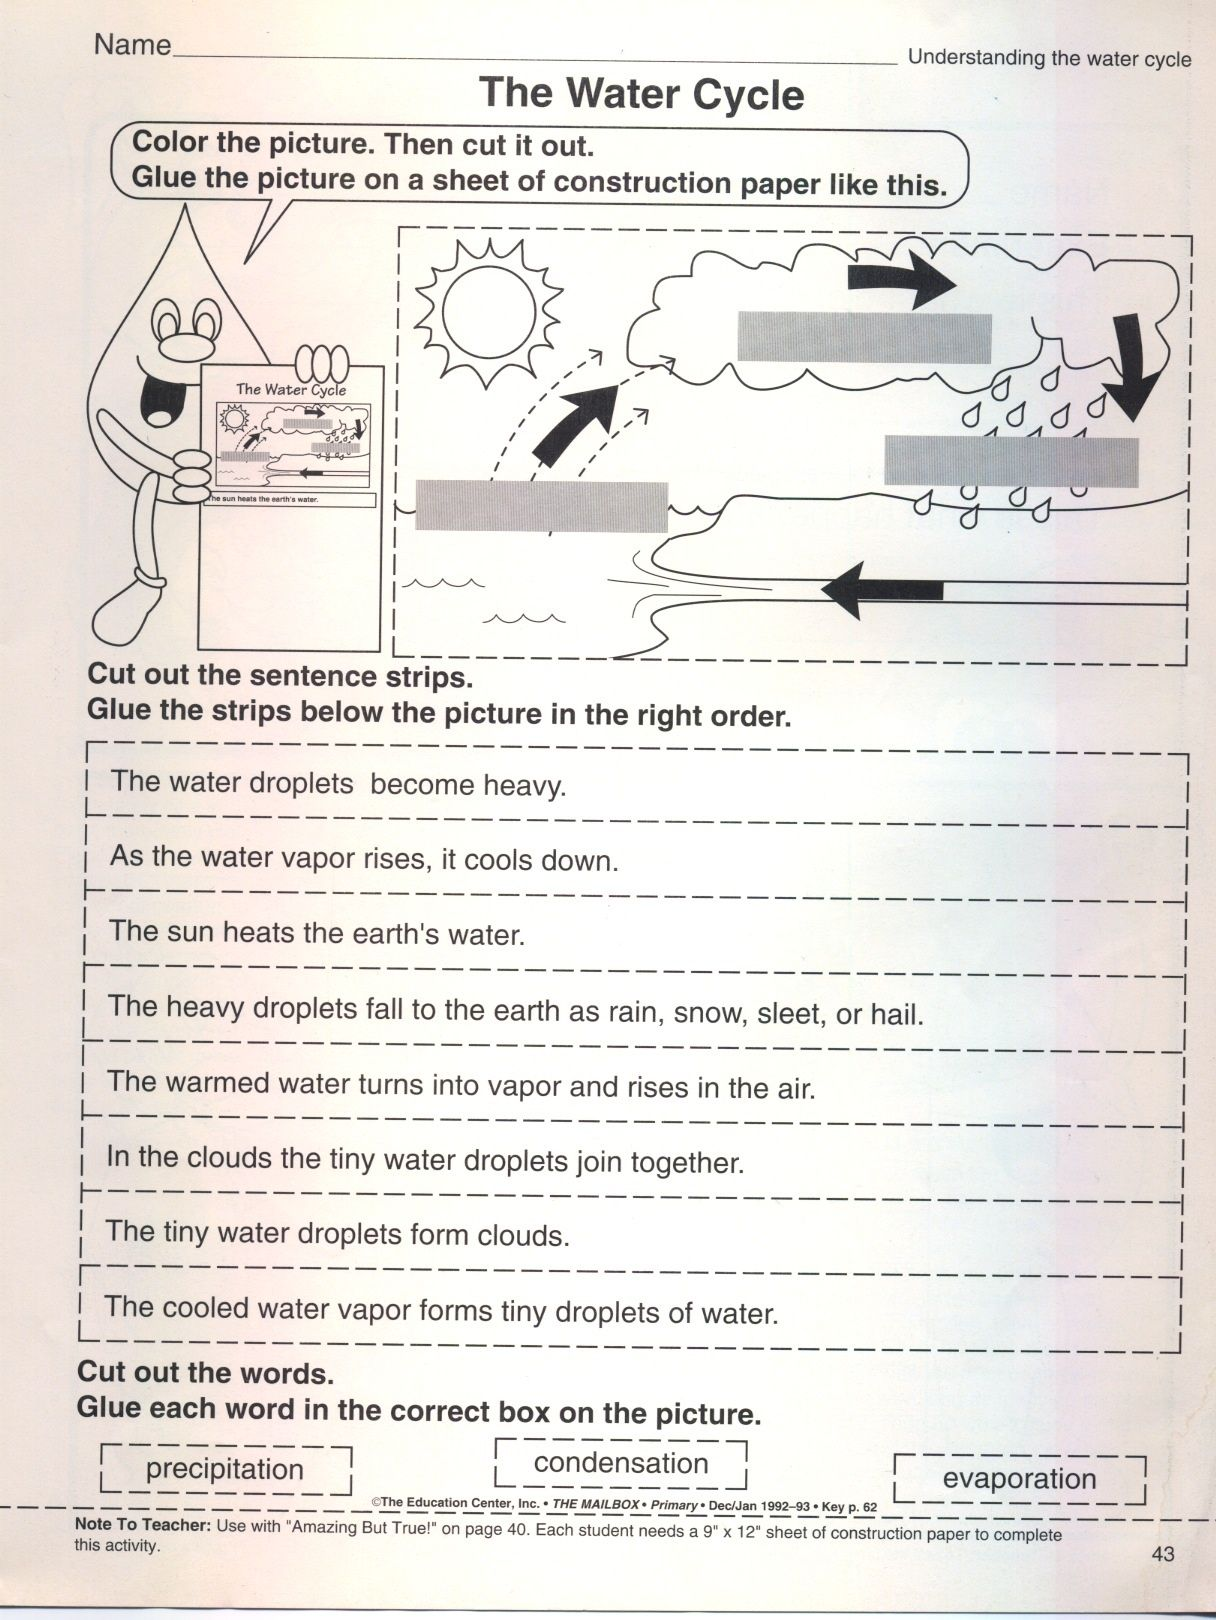 put the water cycle in correct order worksheet   Dynamics cards